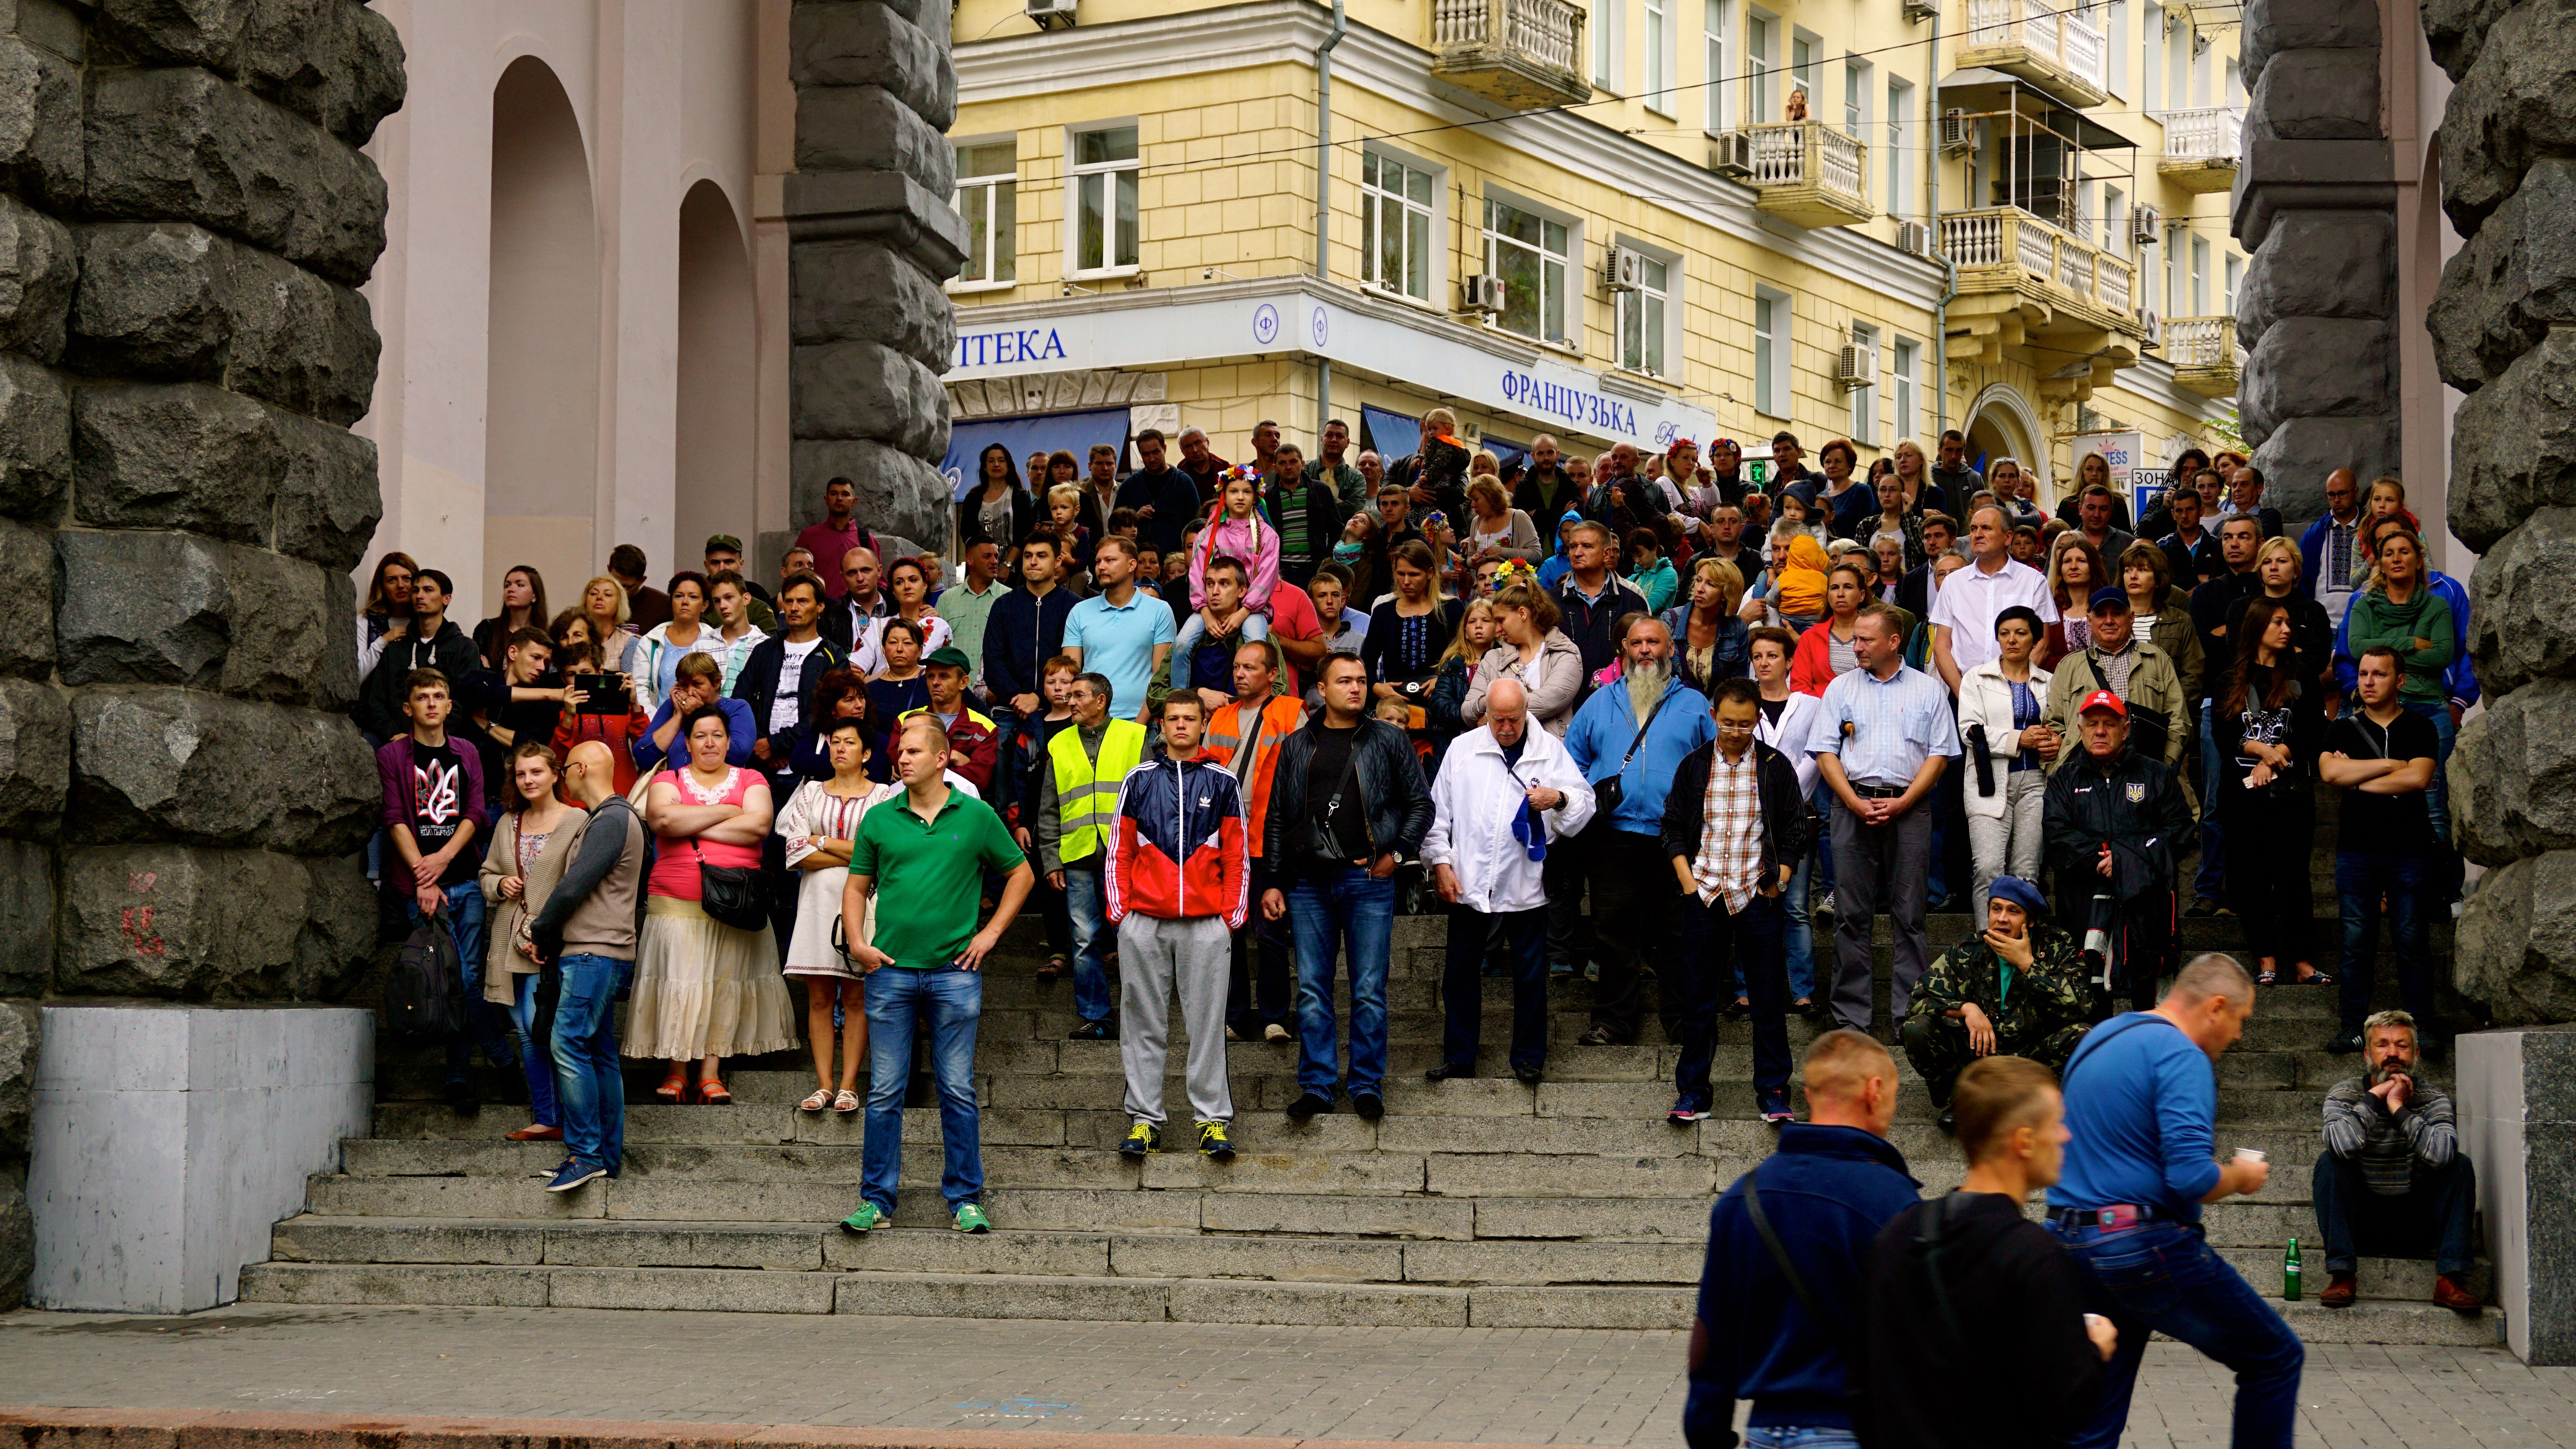 Ukrainian Independence Day celebrations in Kyiv on Aug. 24.